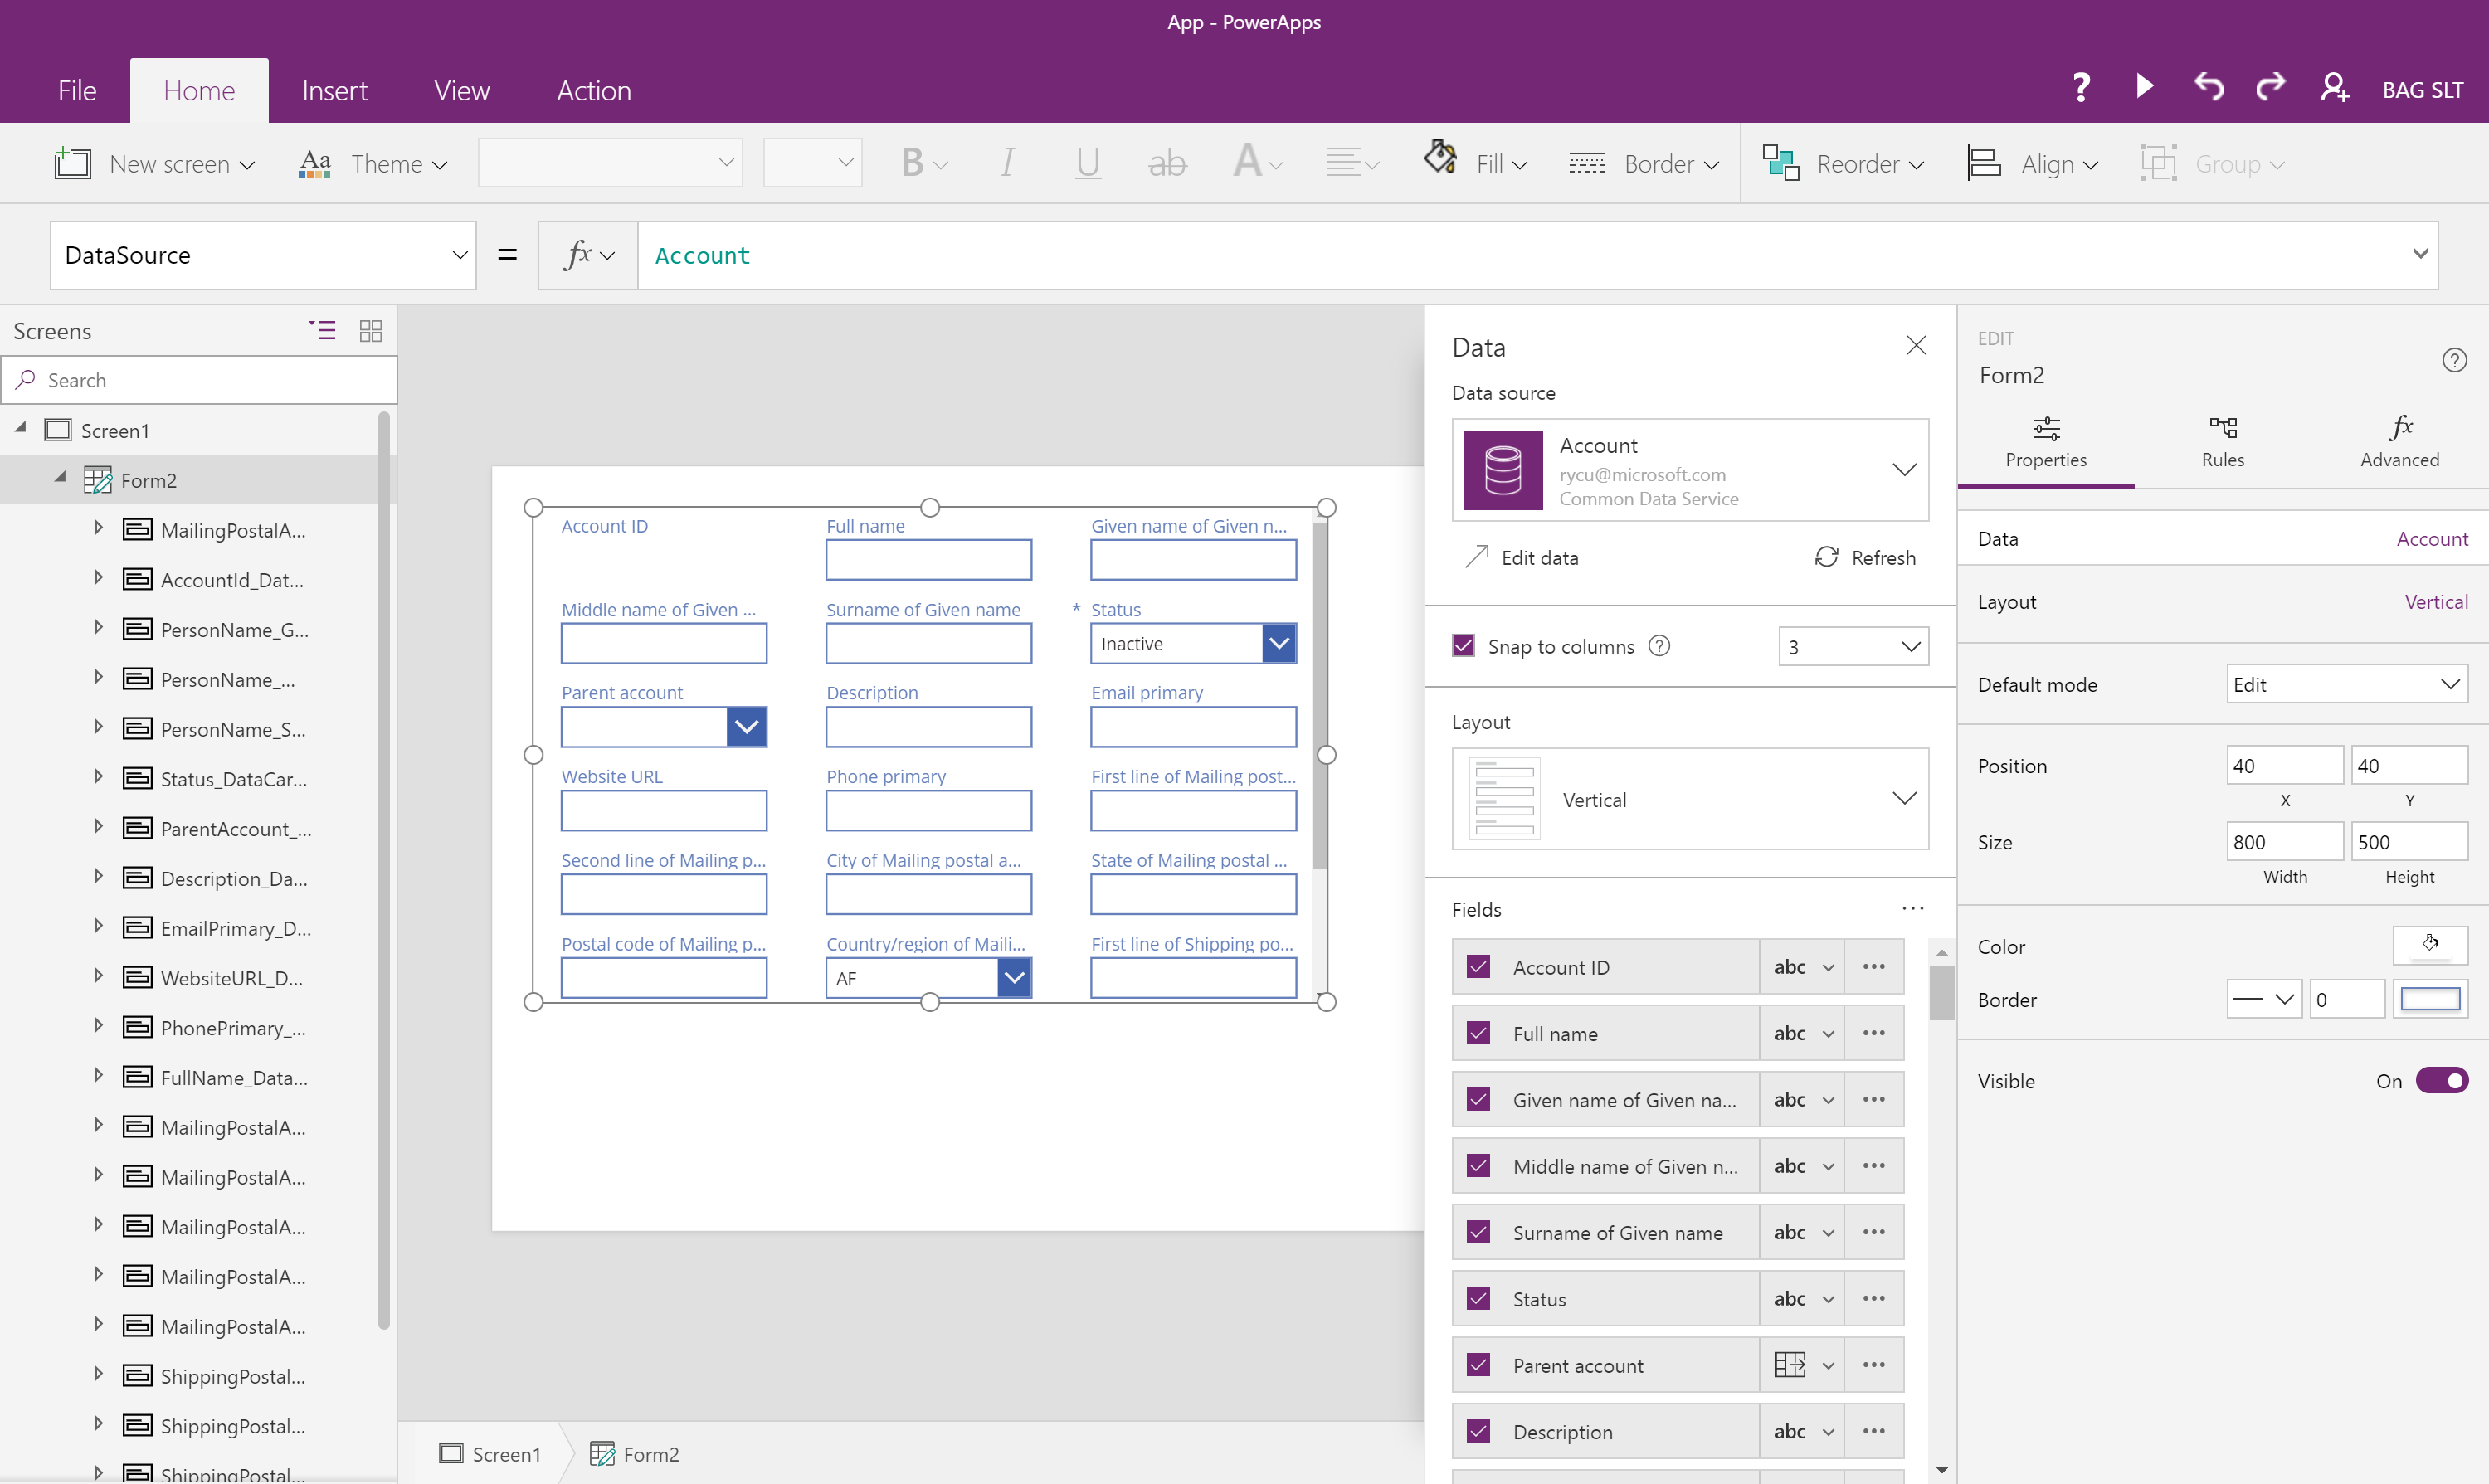 New on PowerApps: easily create rules, configure forms and